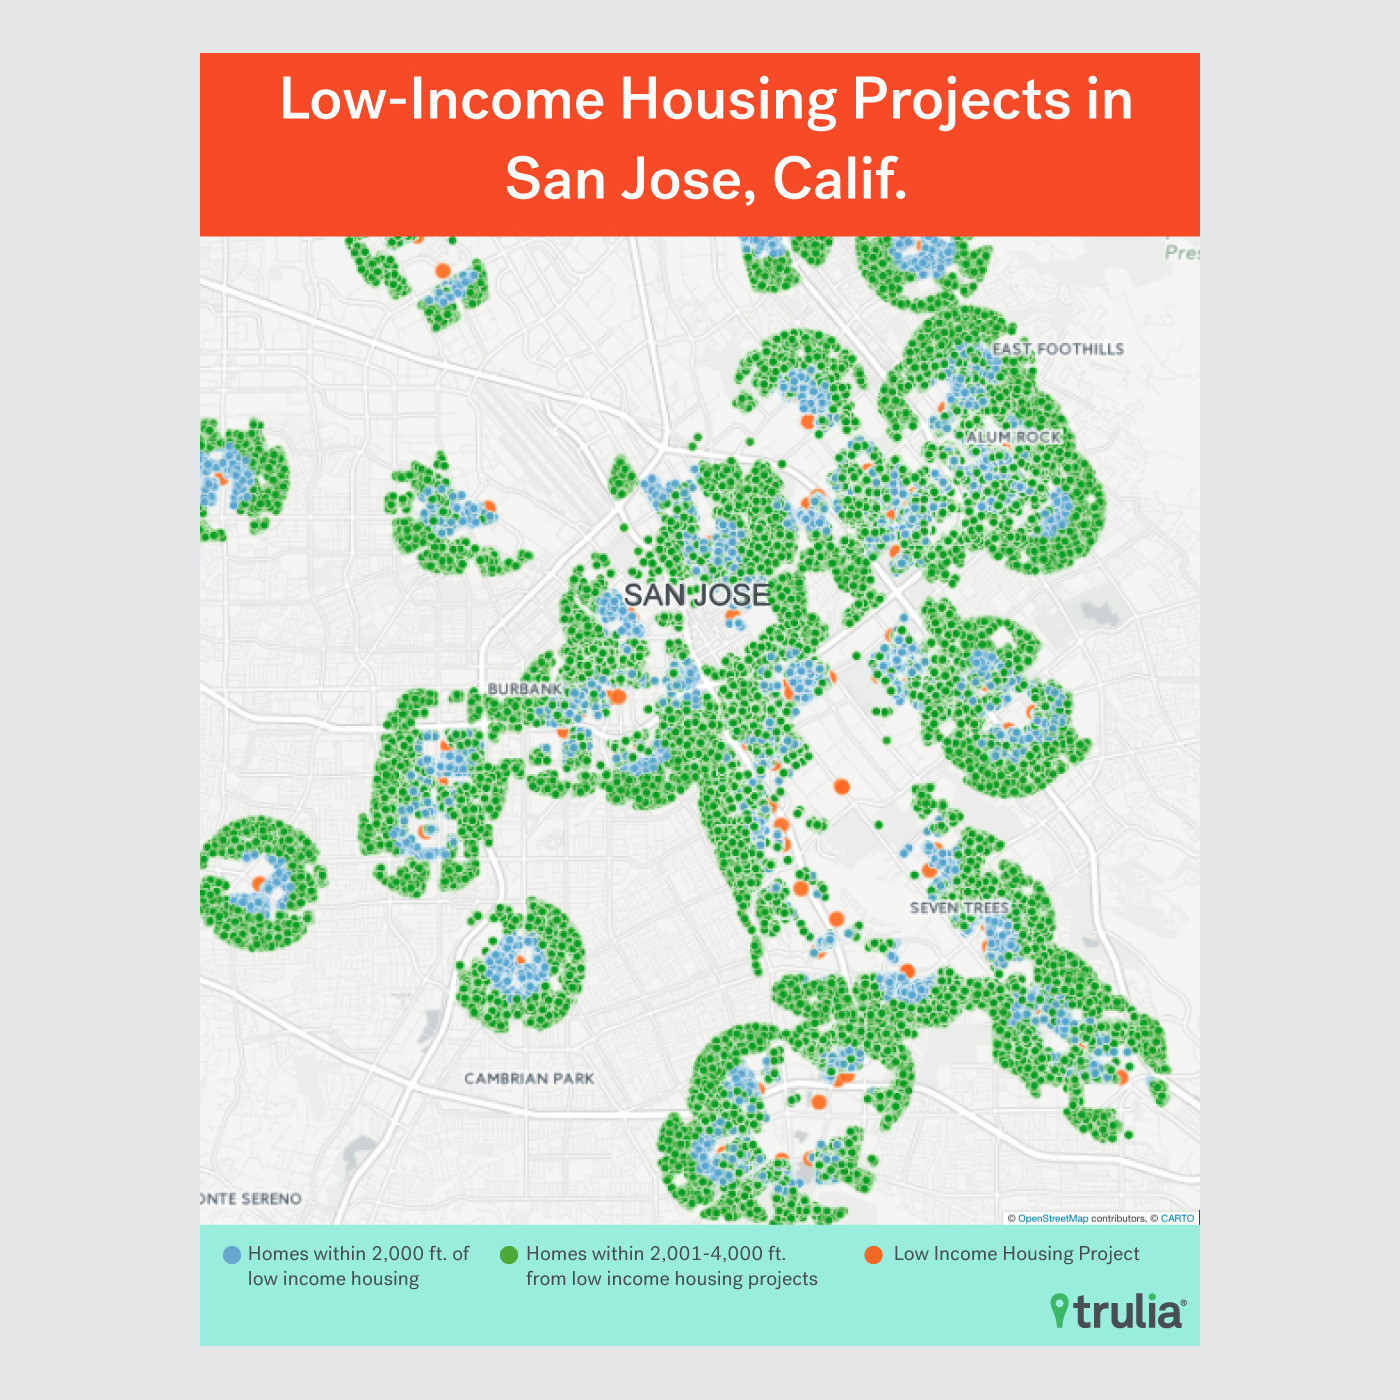 10 Year Study Proves Low Income Housing Does